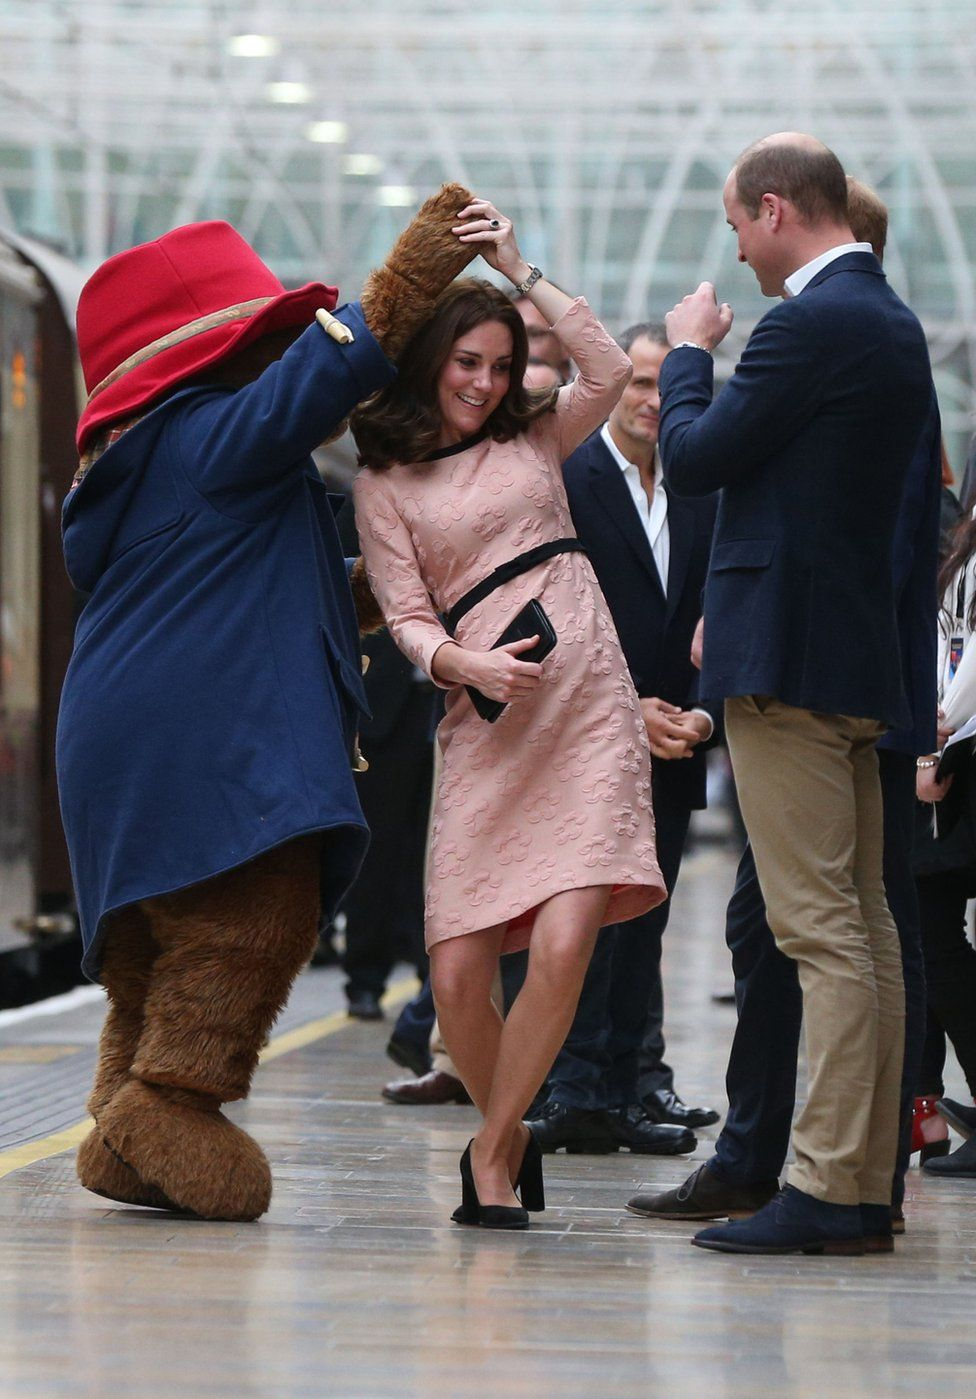 The Duchess of Cambridge dances with a costumed figure of Paddington Bear.